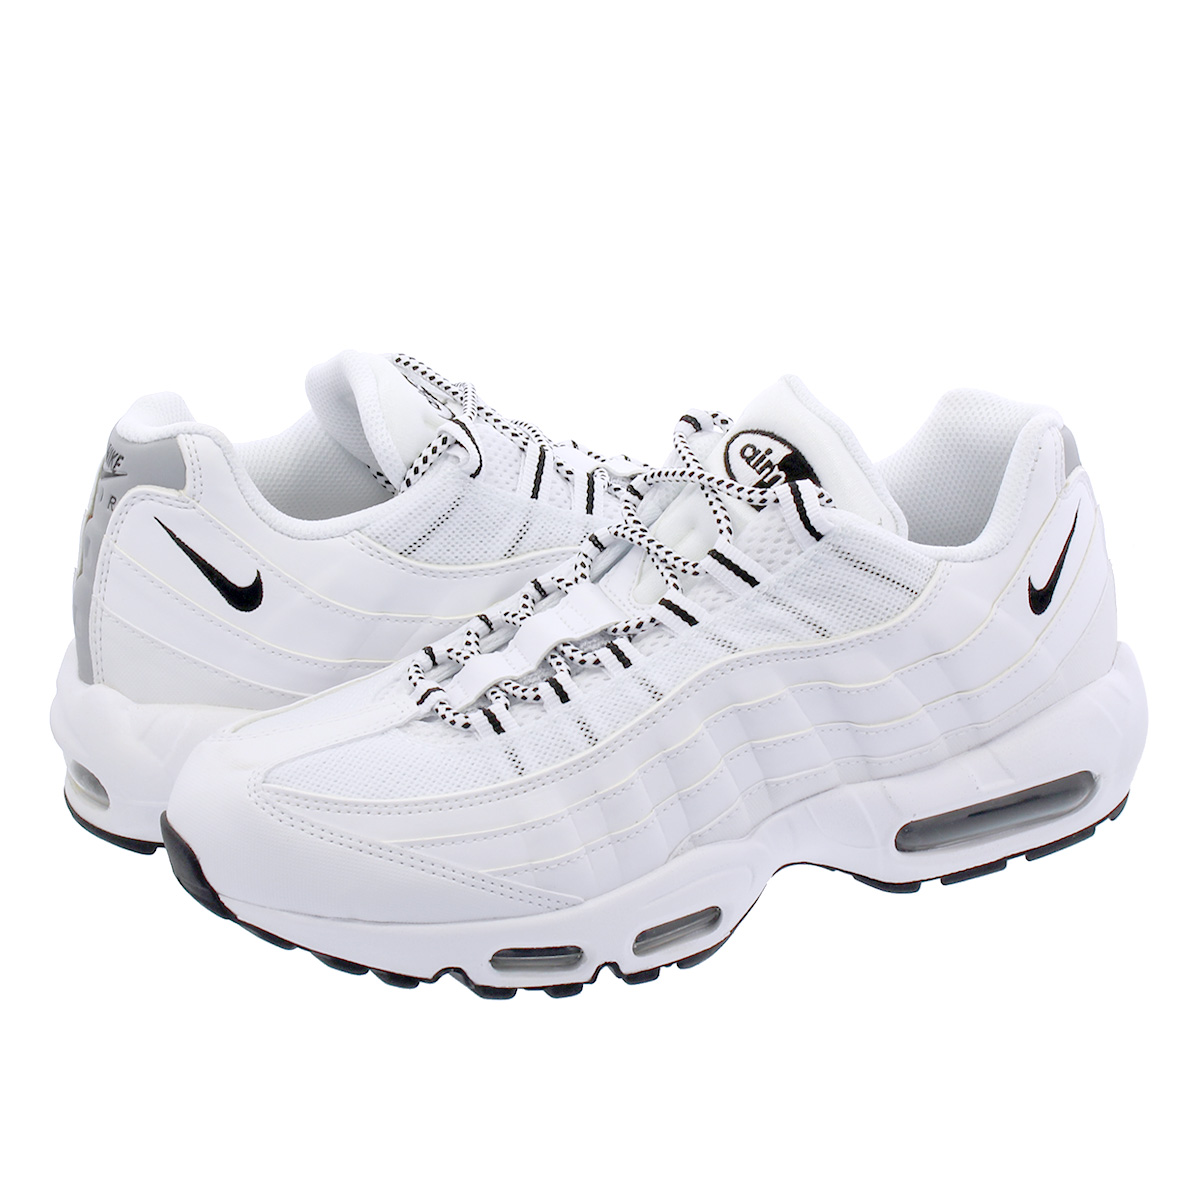 brand new 7f7ed dc5cd NIKE AIR MAX 95 Nike Air Max 95 WHITE BLACK